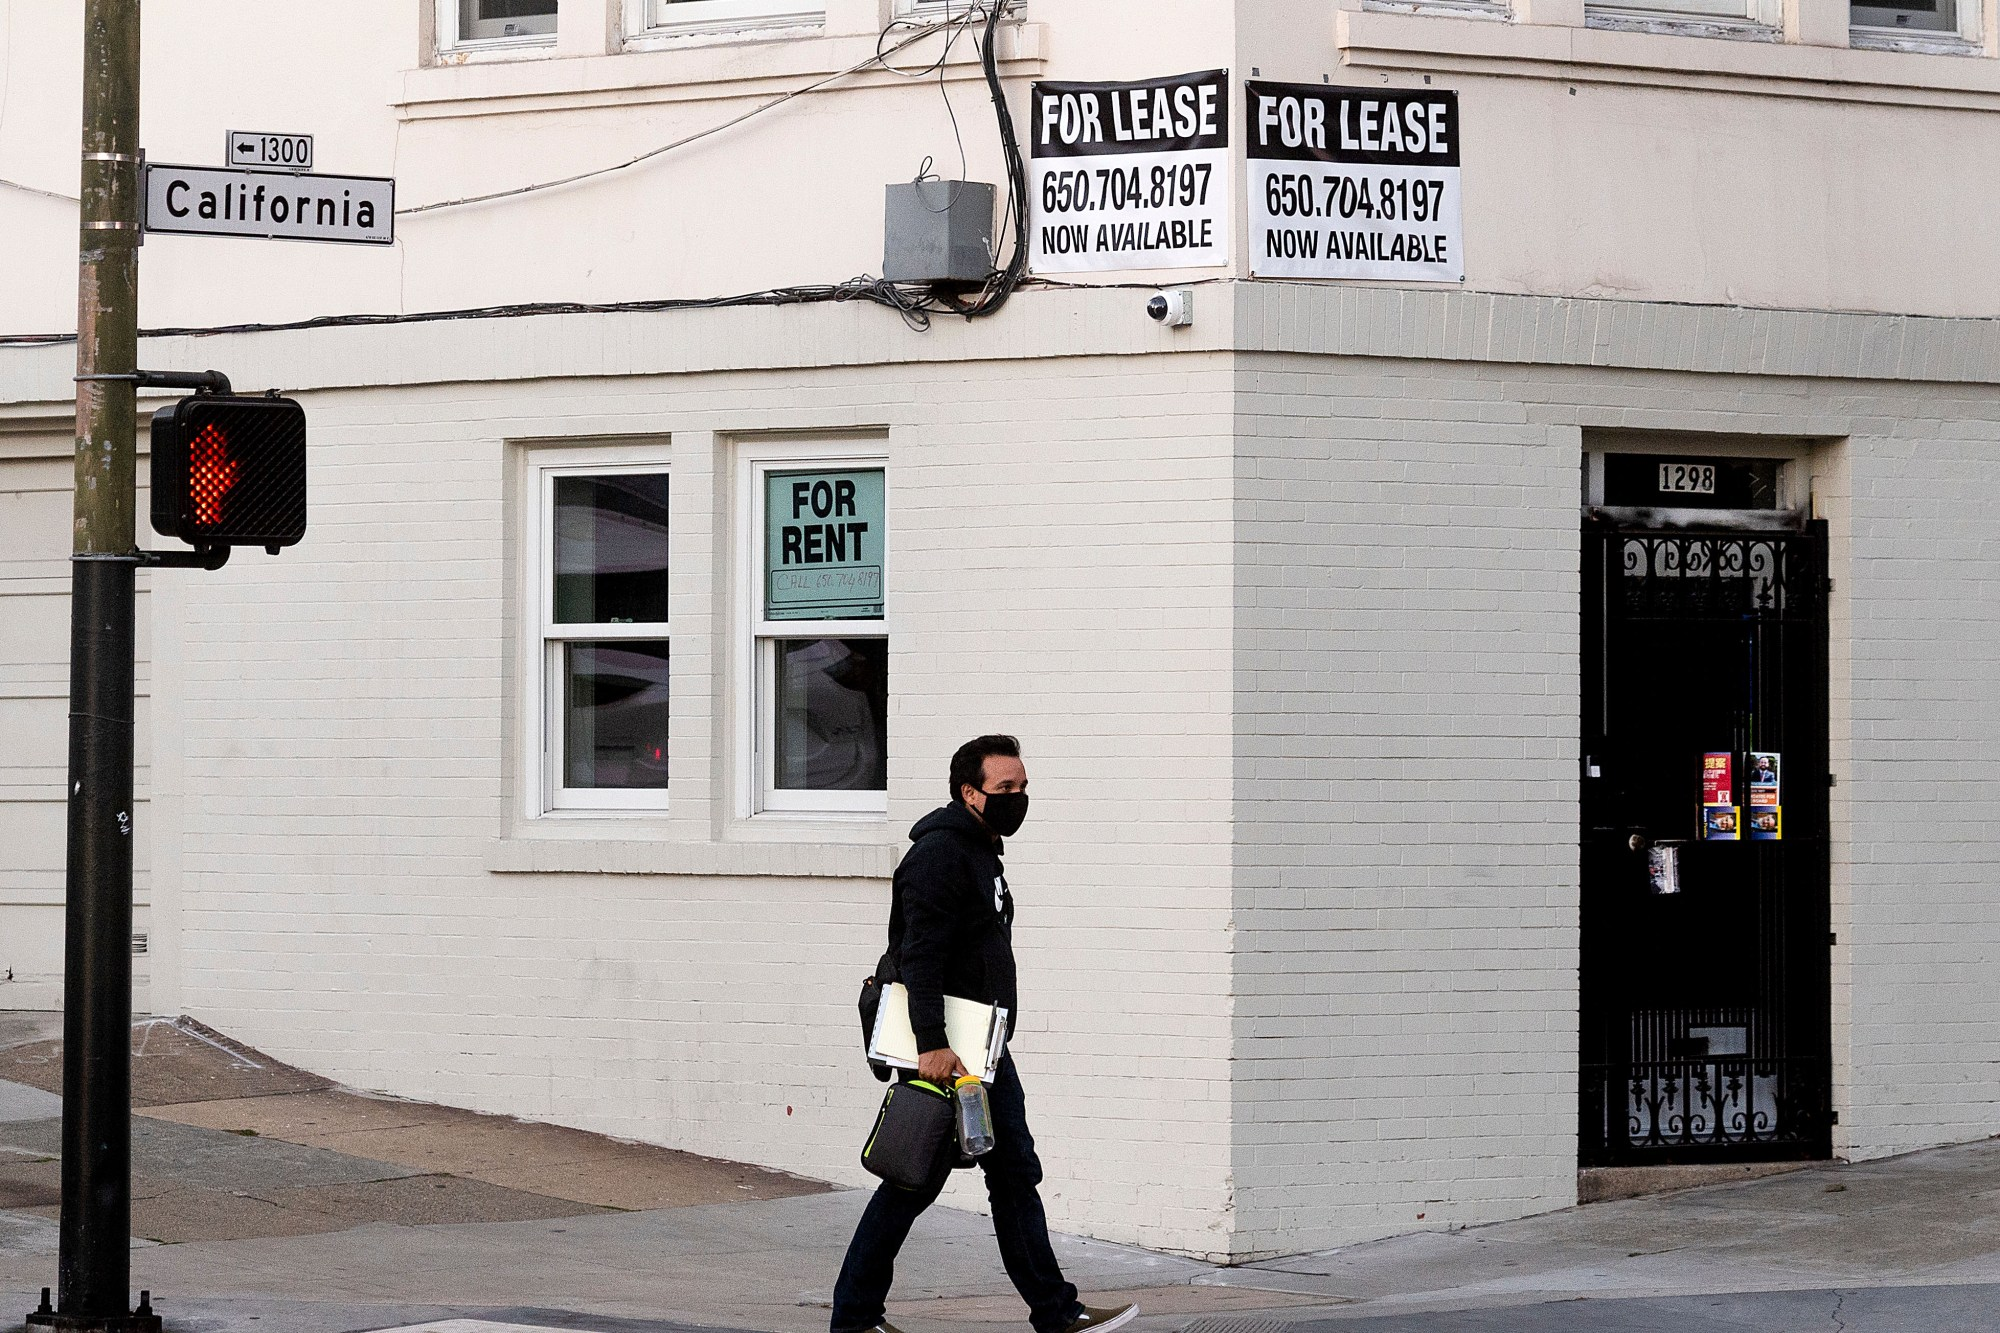 A pedestrian passes under for rent and for lease signs in San Francisco on Oct. 21, 2020. (Noah Berger/Associated Press)